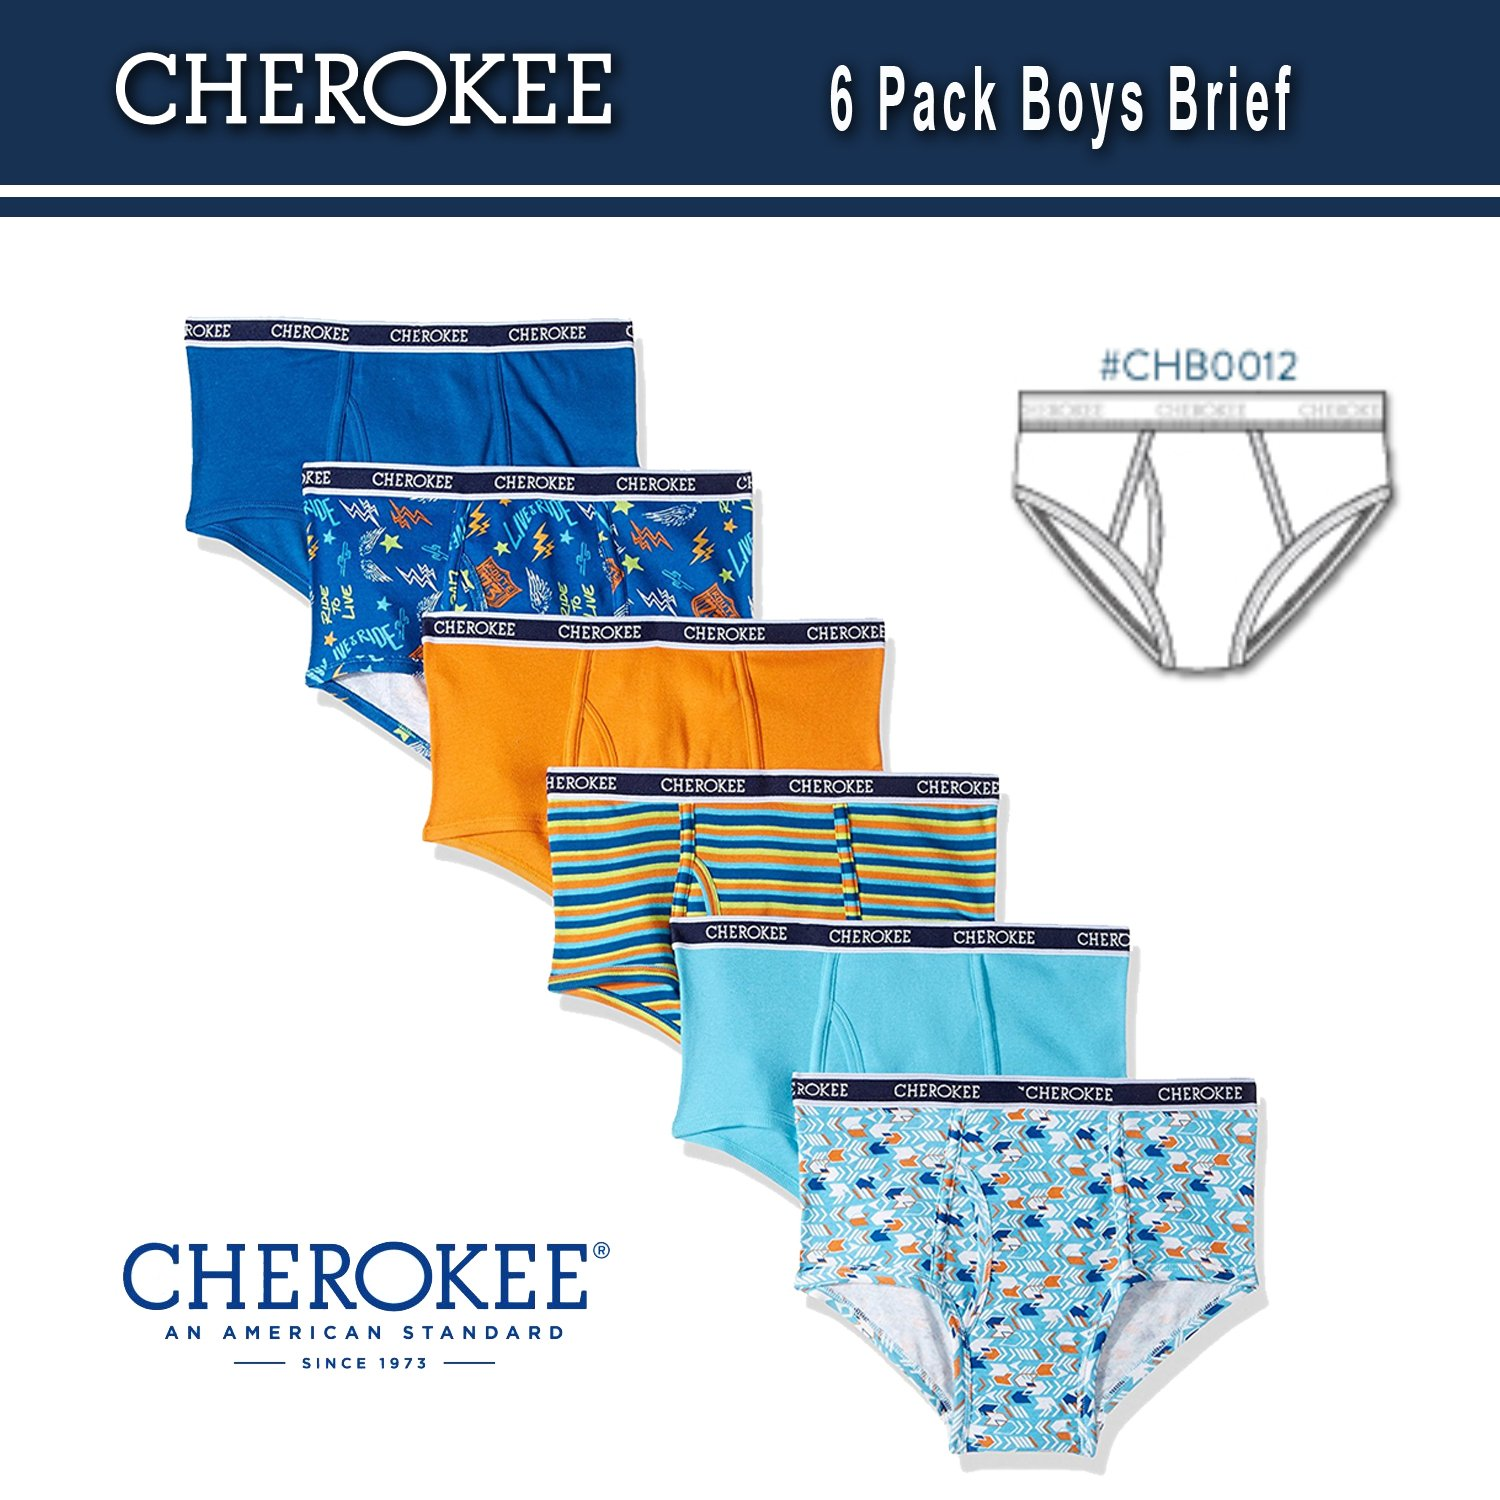 Cherokee Little Boys 6 Pack Brief, Camo/Solid Print Pack, XL by Cherokee (Image #3)